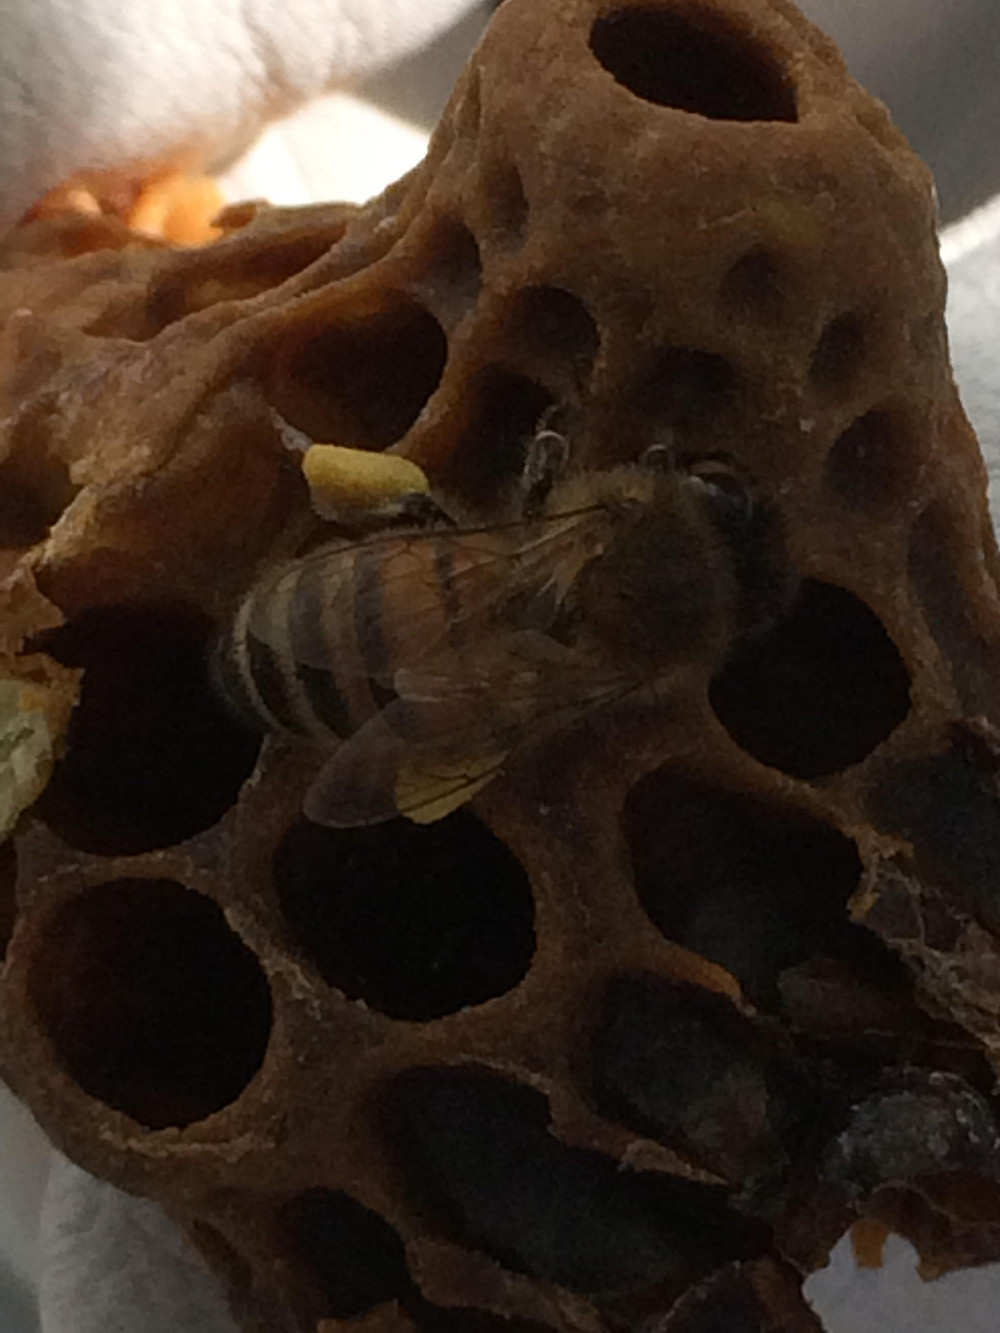 Honey Bee Close up with full pollen sacks